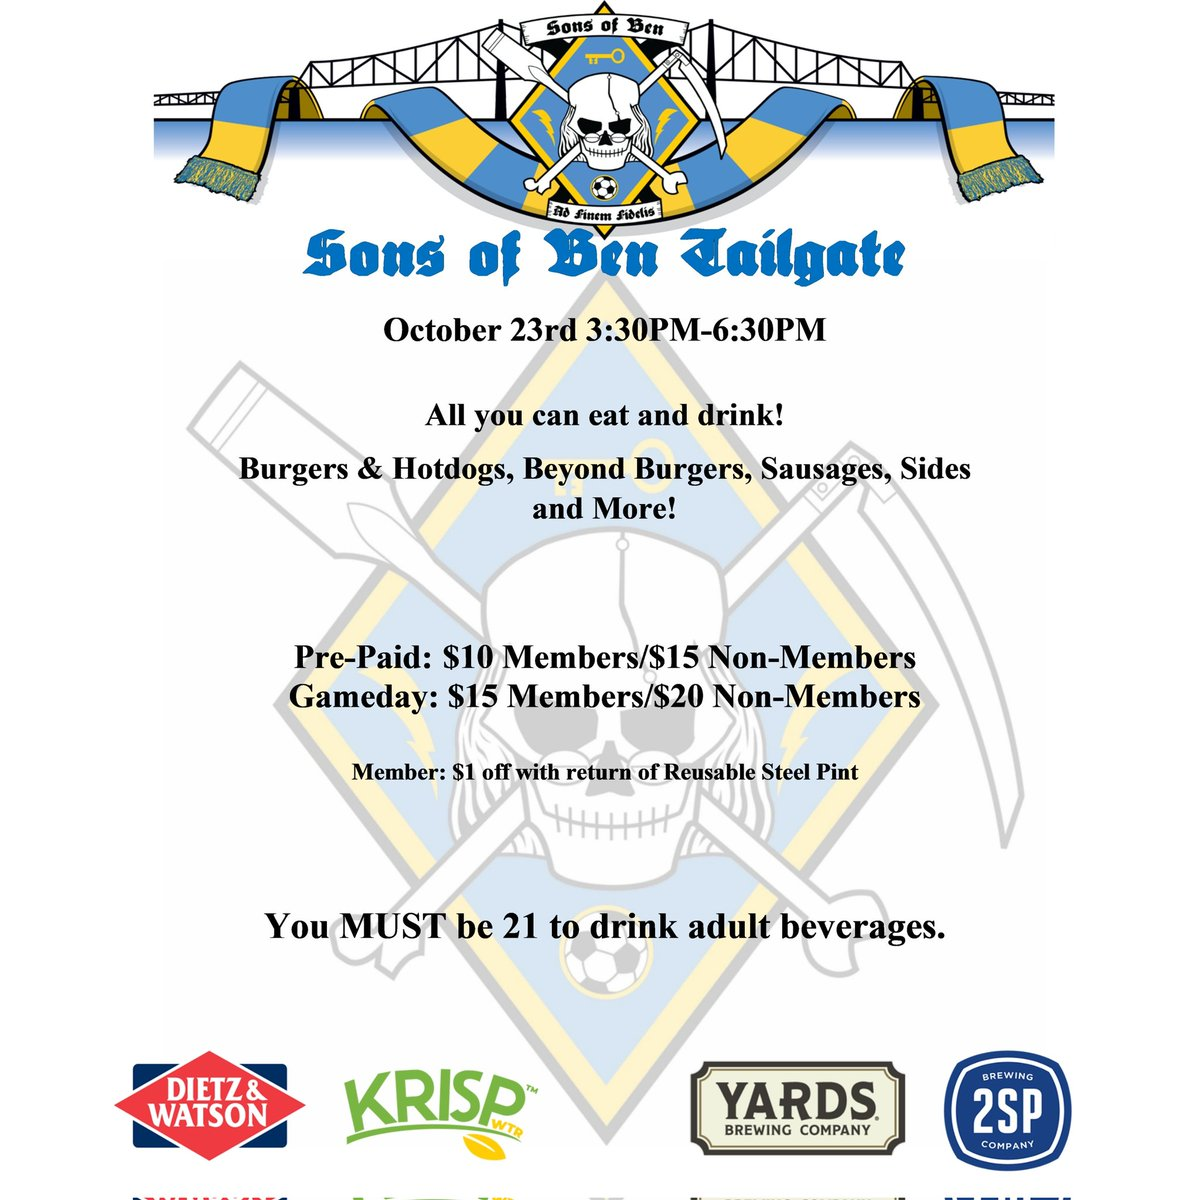 Come join us this Saturday before the @PhilaUnion take on Nashville! Don't forget it is Kids Night so bring the kiddos! sonsofben.ticketleap.com/nsh21/dates/Oc…